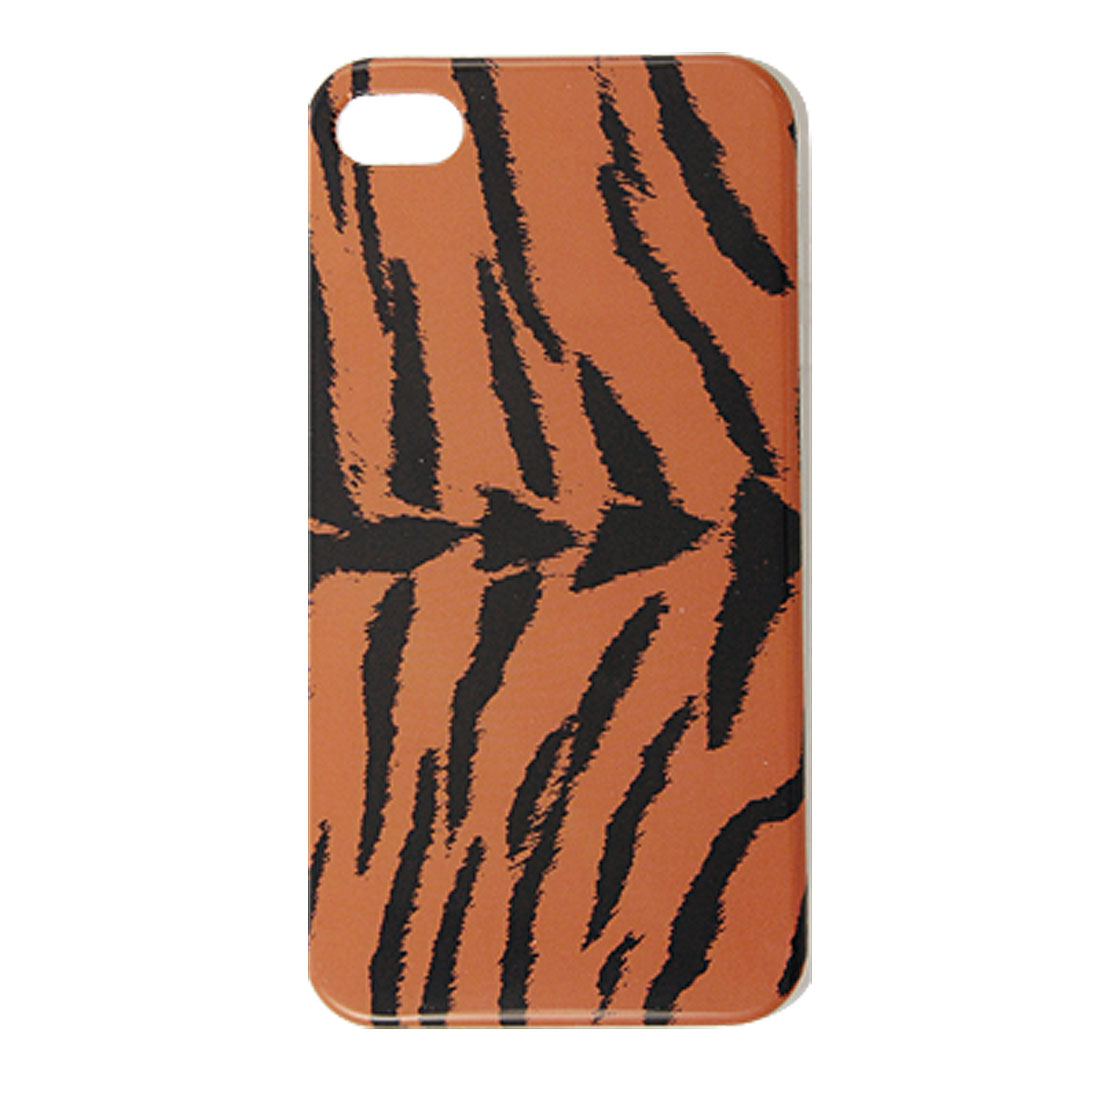 Brown Black IMD Leopard Print Plastic Cover for iPhone 4 4G